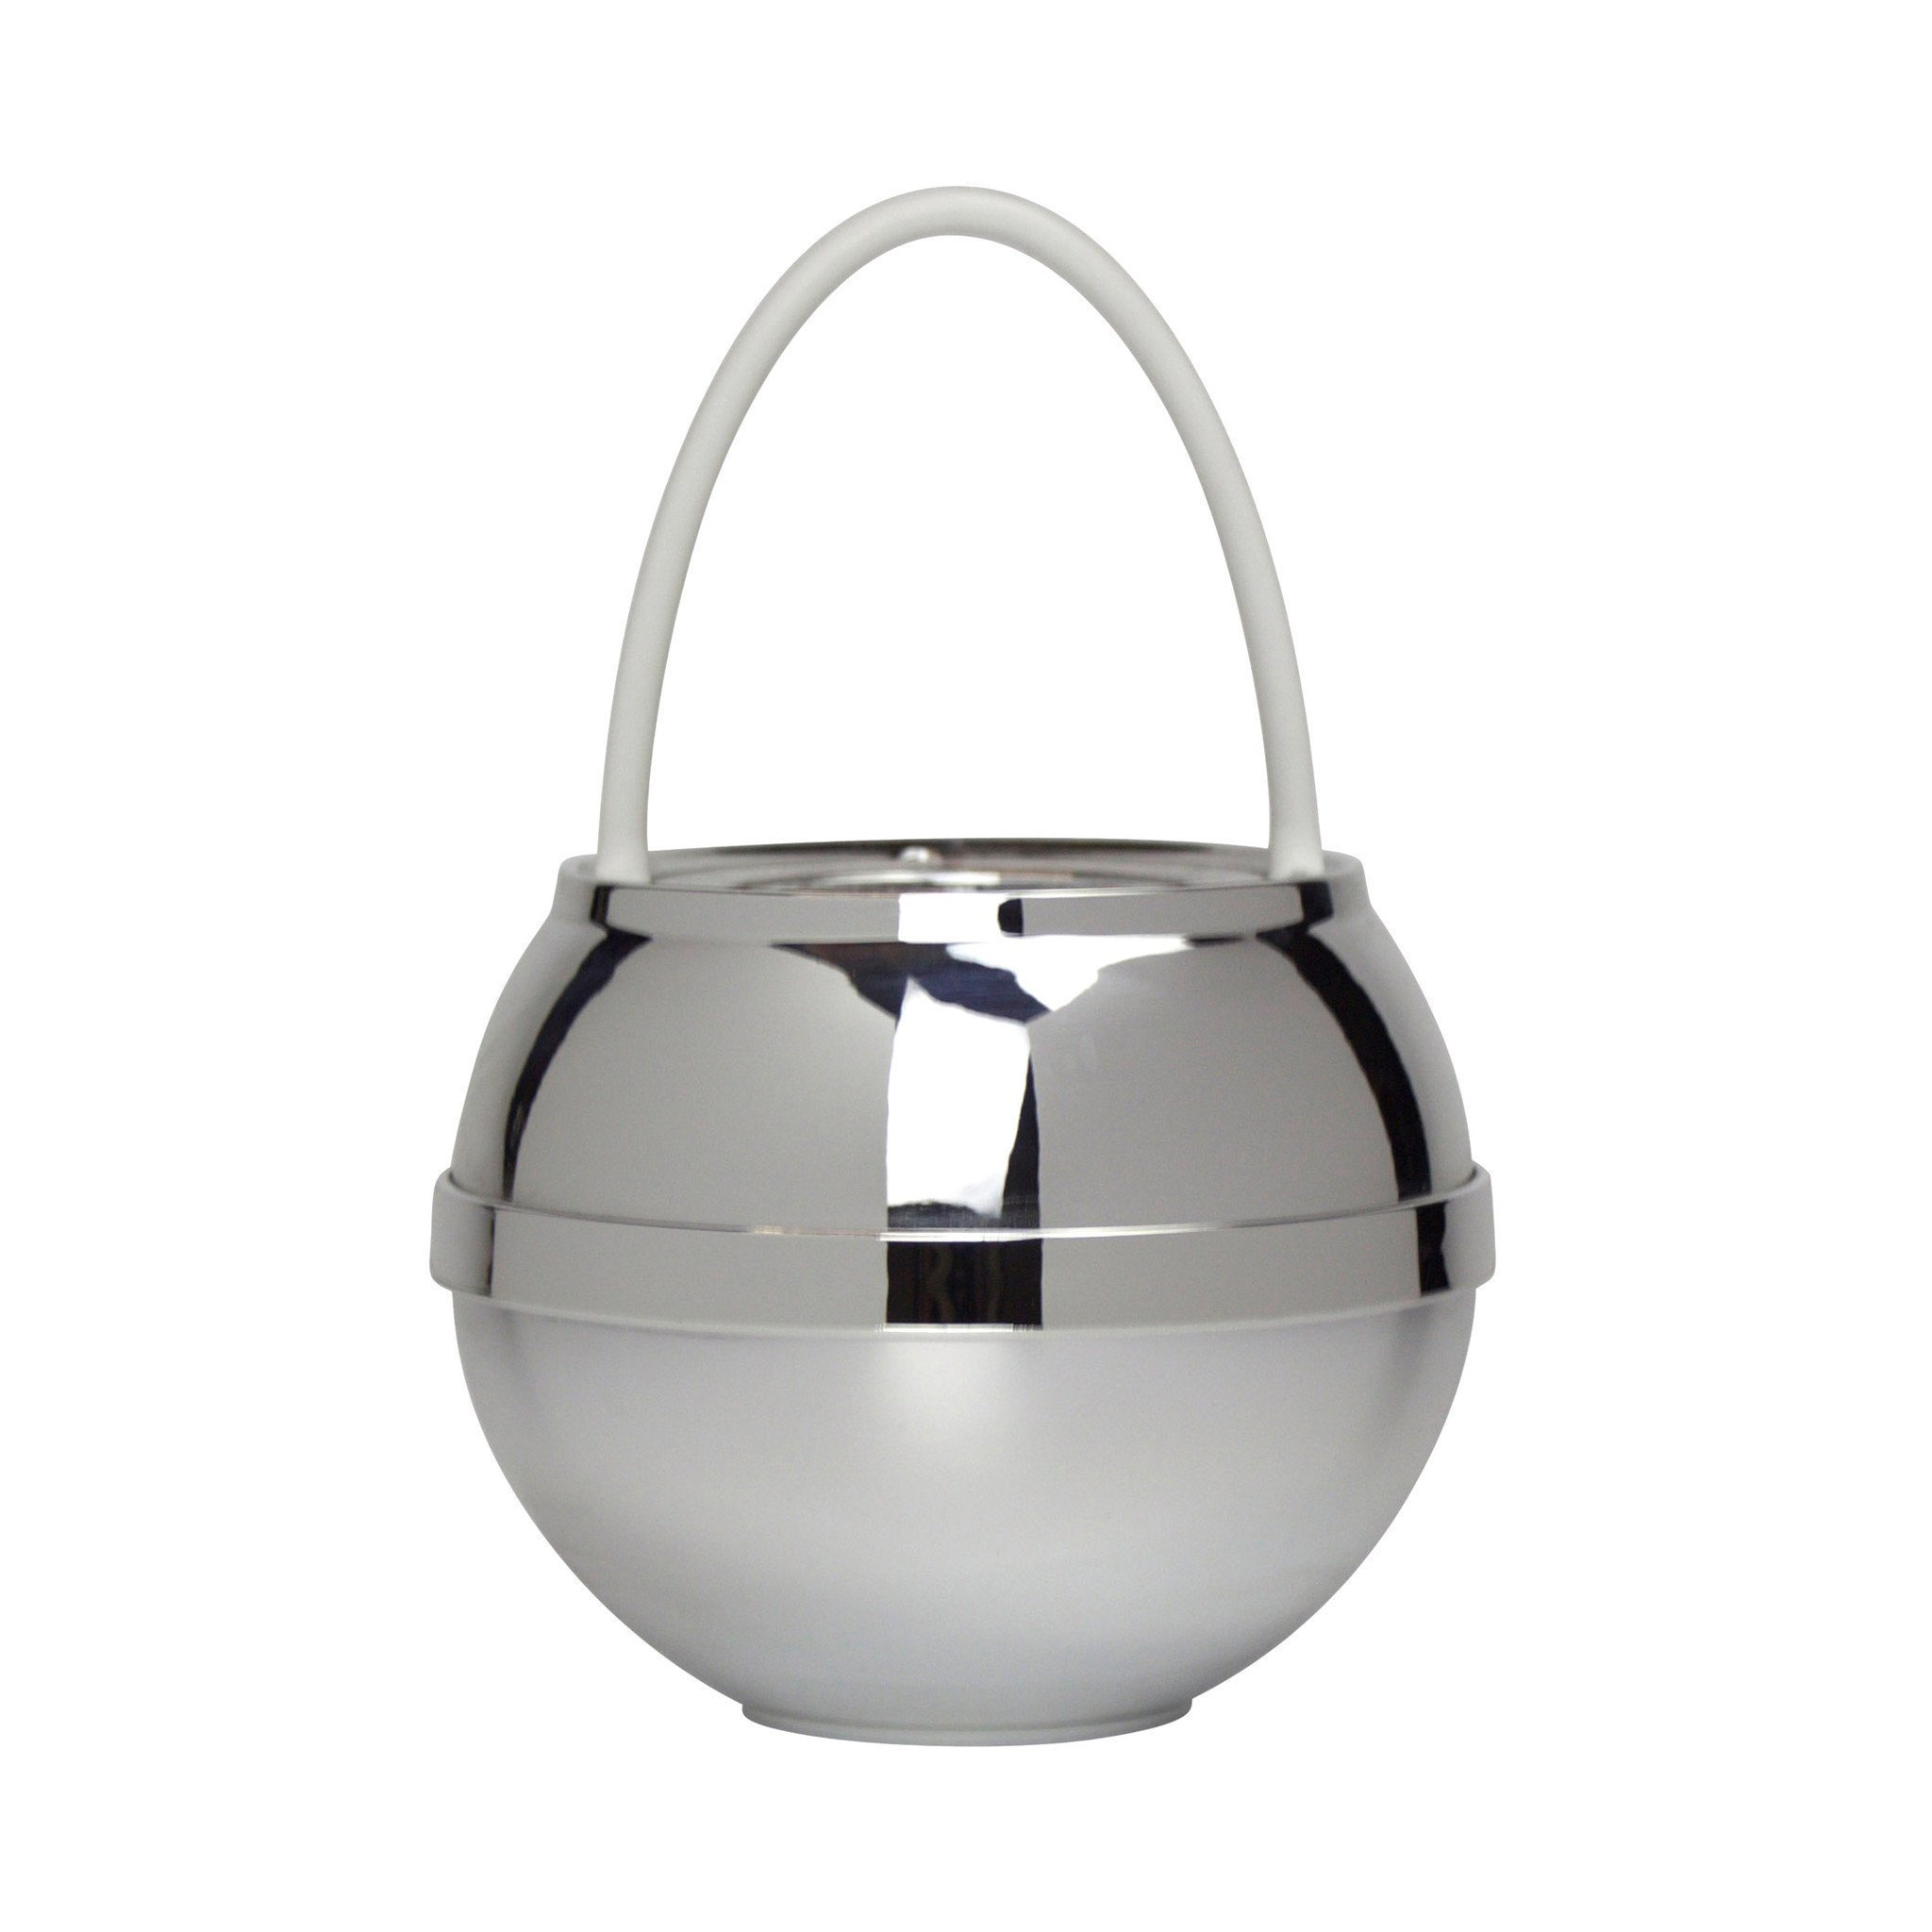 Crystal Quest CQE-SP-00809 Chrome Bath Ball Filter by Crystal Quest